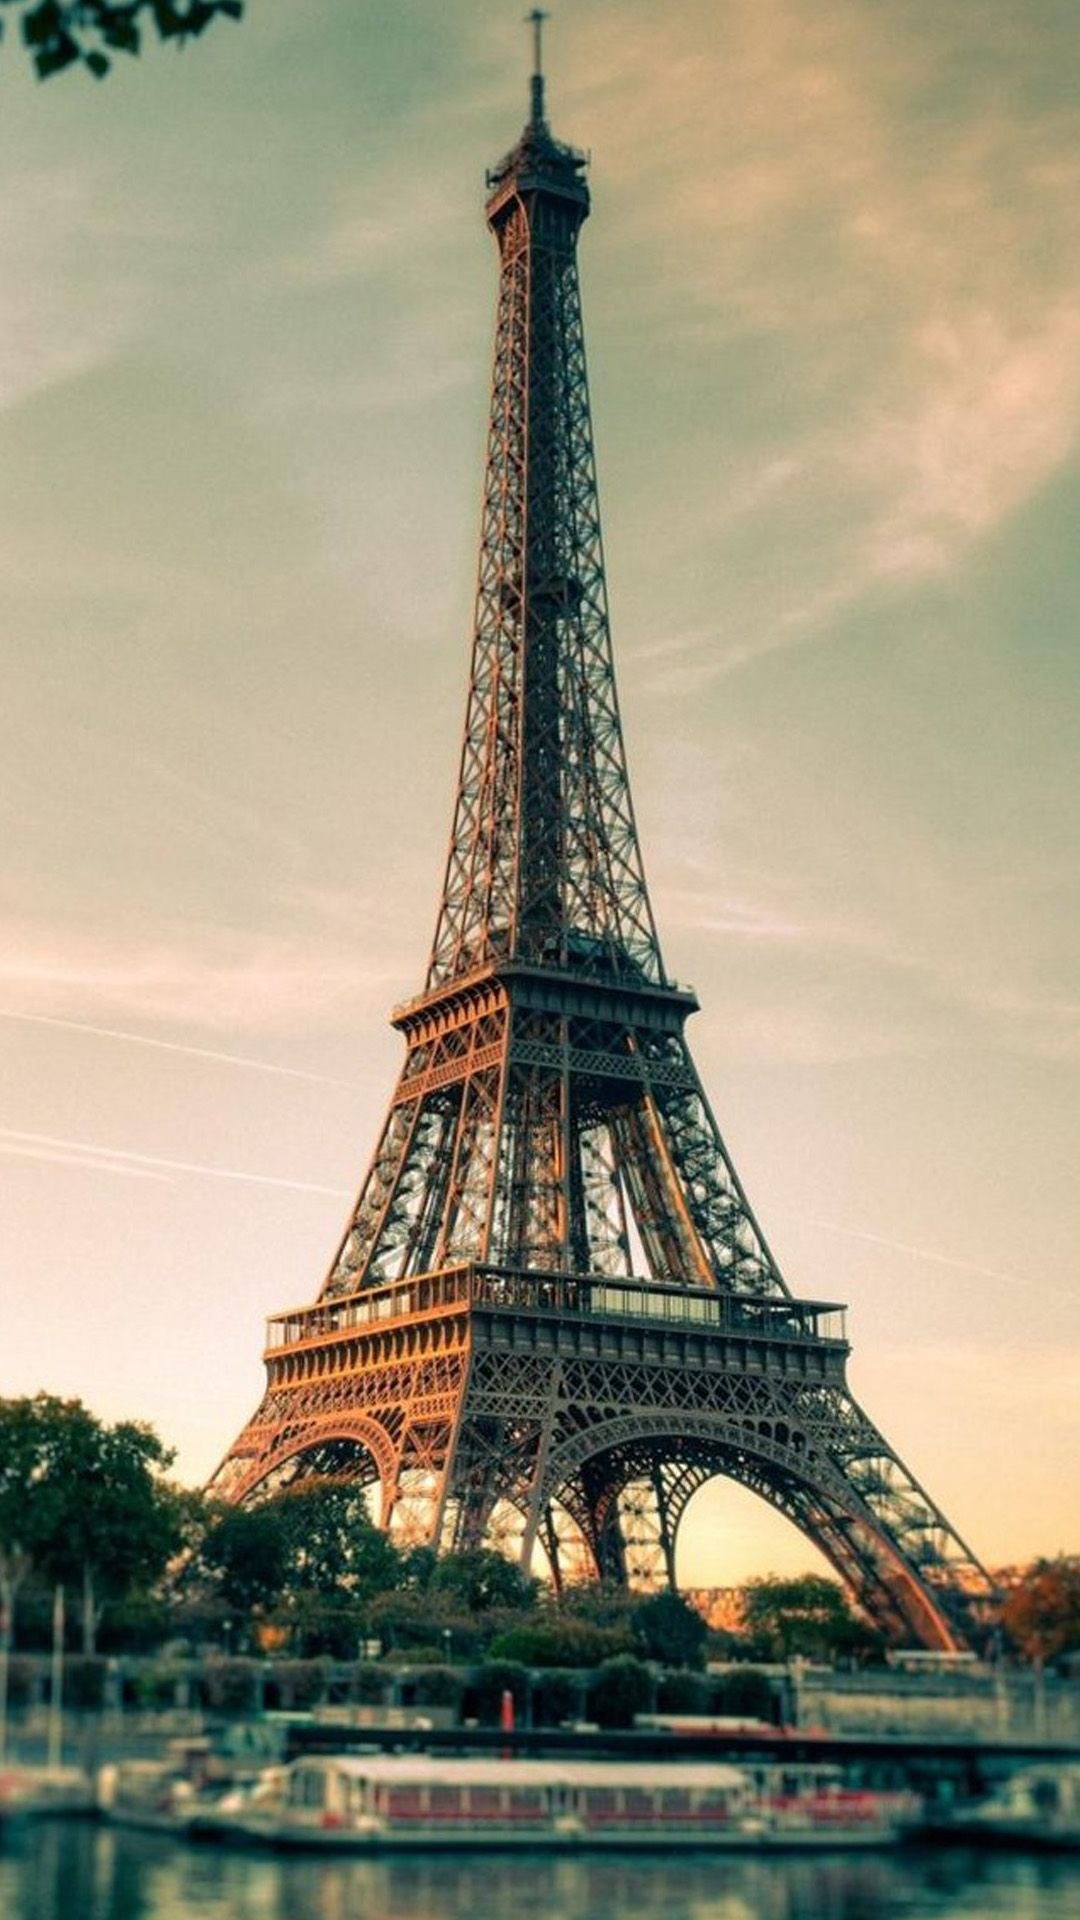 France Iphone Wallpapers Top Free France Iphone Backgrounds Wallpaperaccess